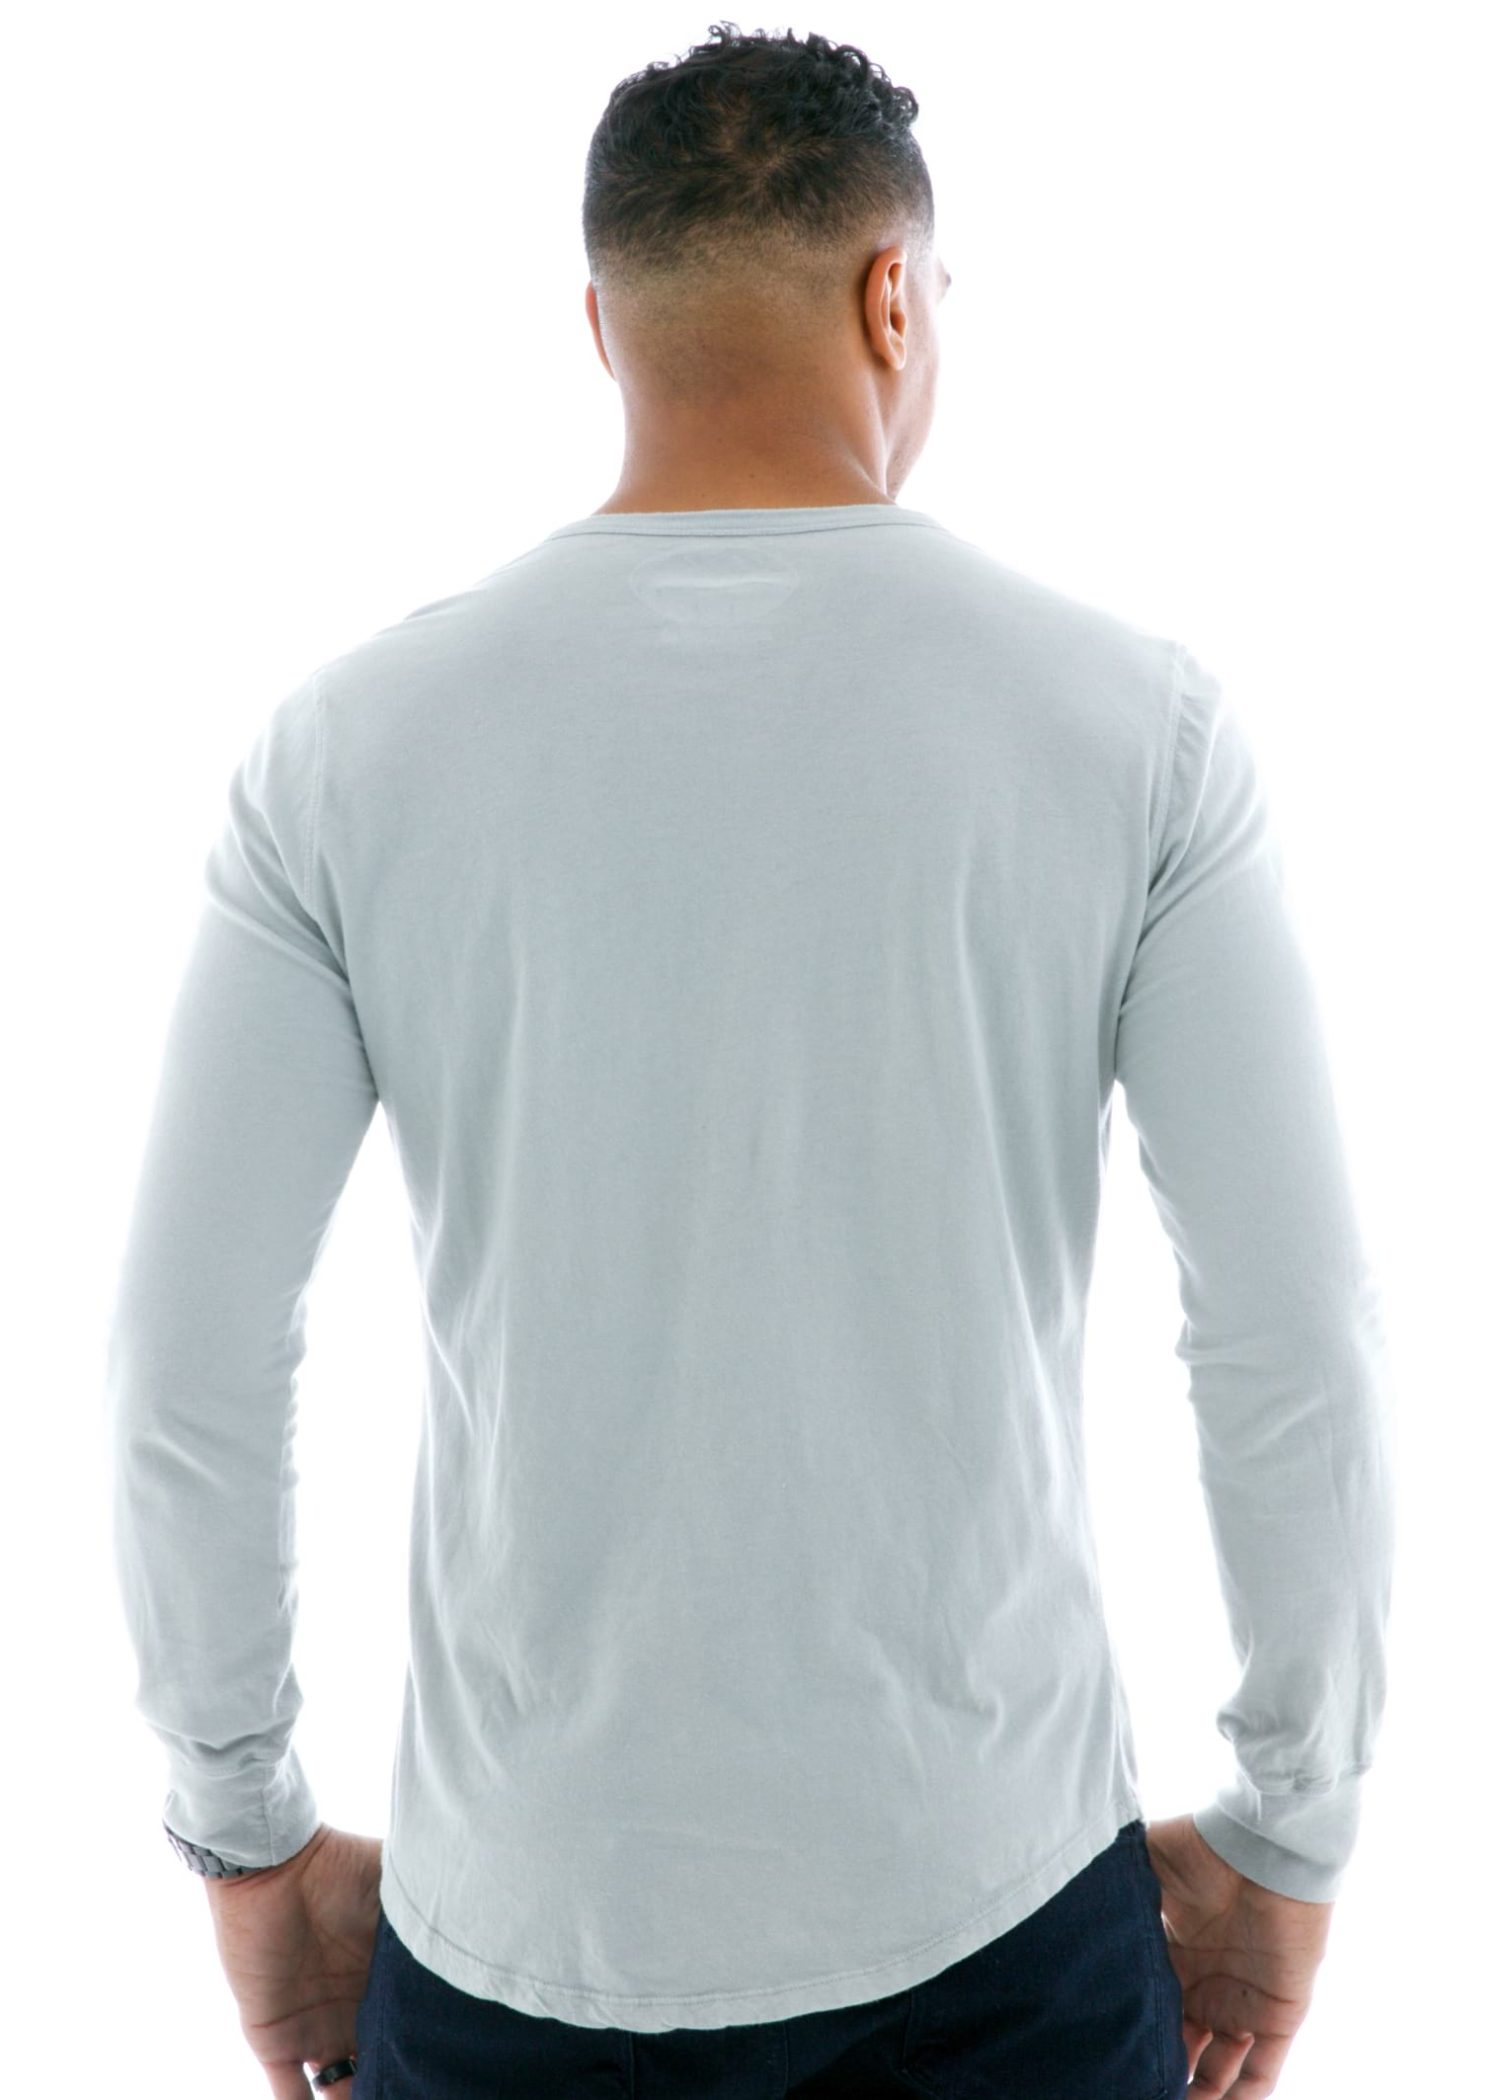 Vintage Long Sleeve Henley T-Shirt Back View